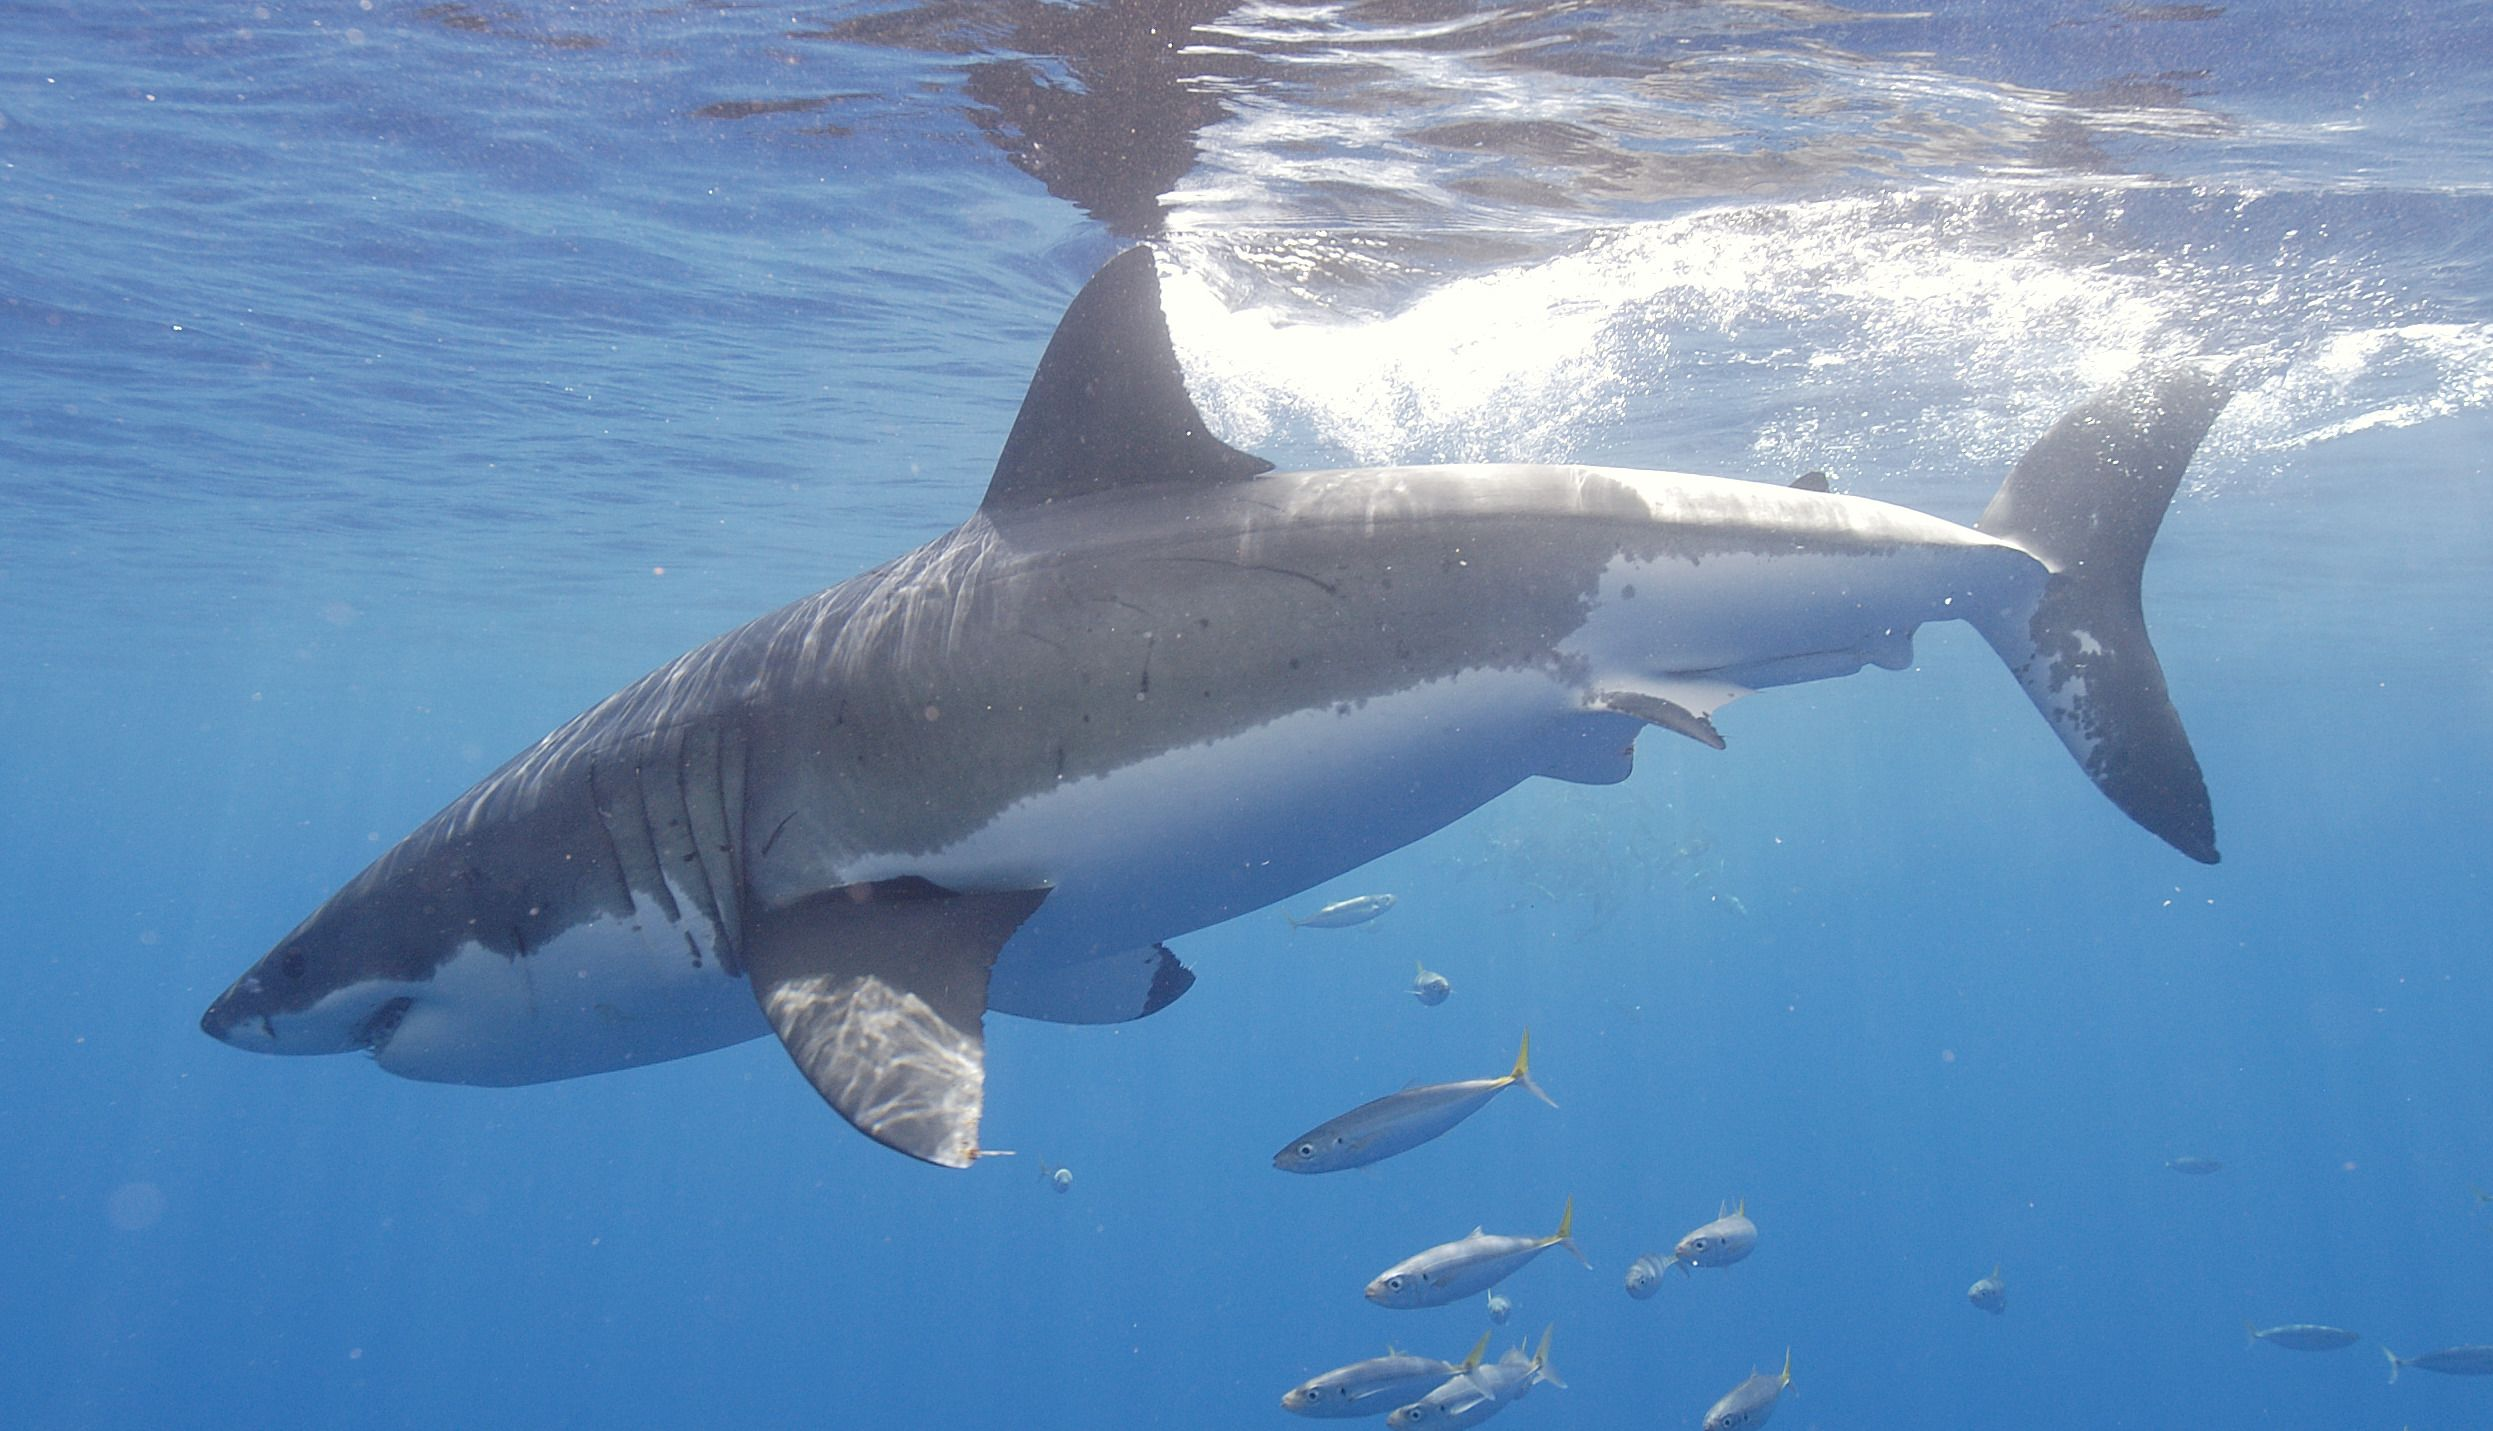 A massive, streamlined body with rows of razor sharp teeth. This is why I'm afraid of the deep ocean :)